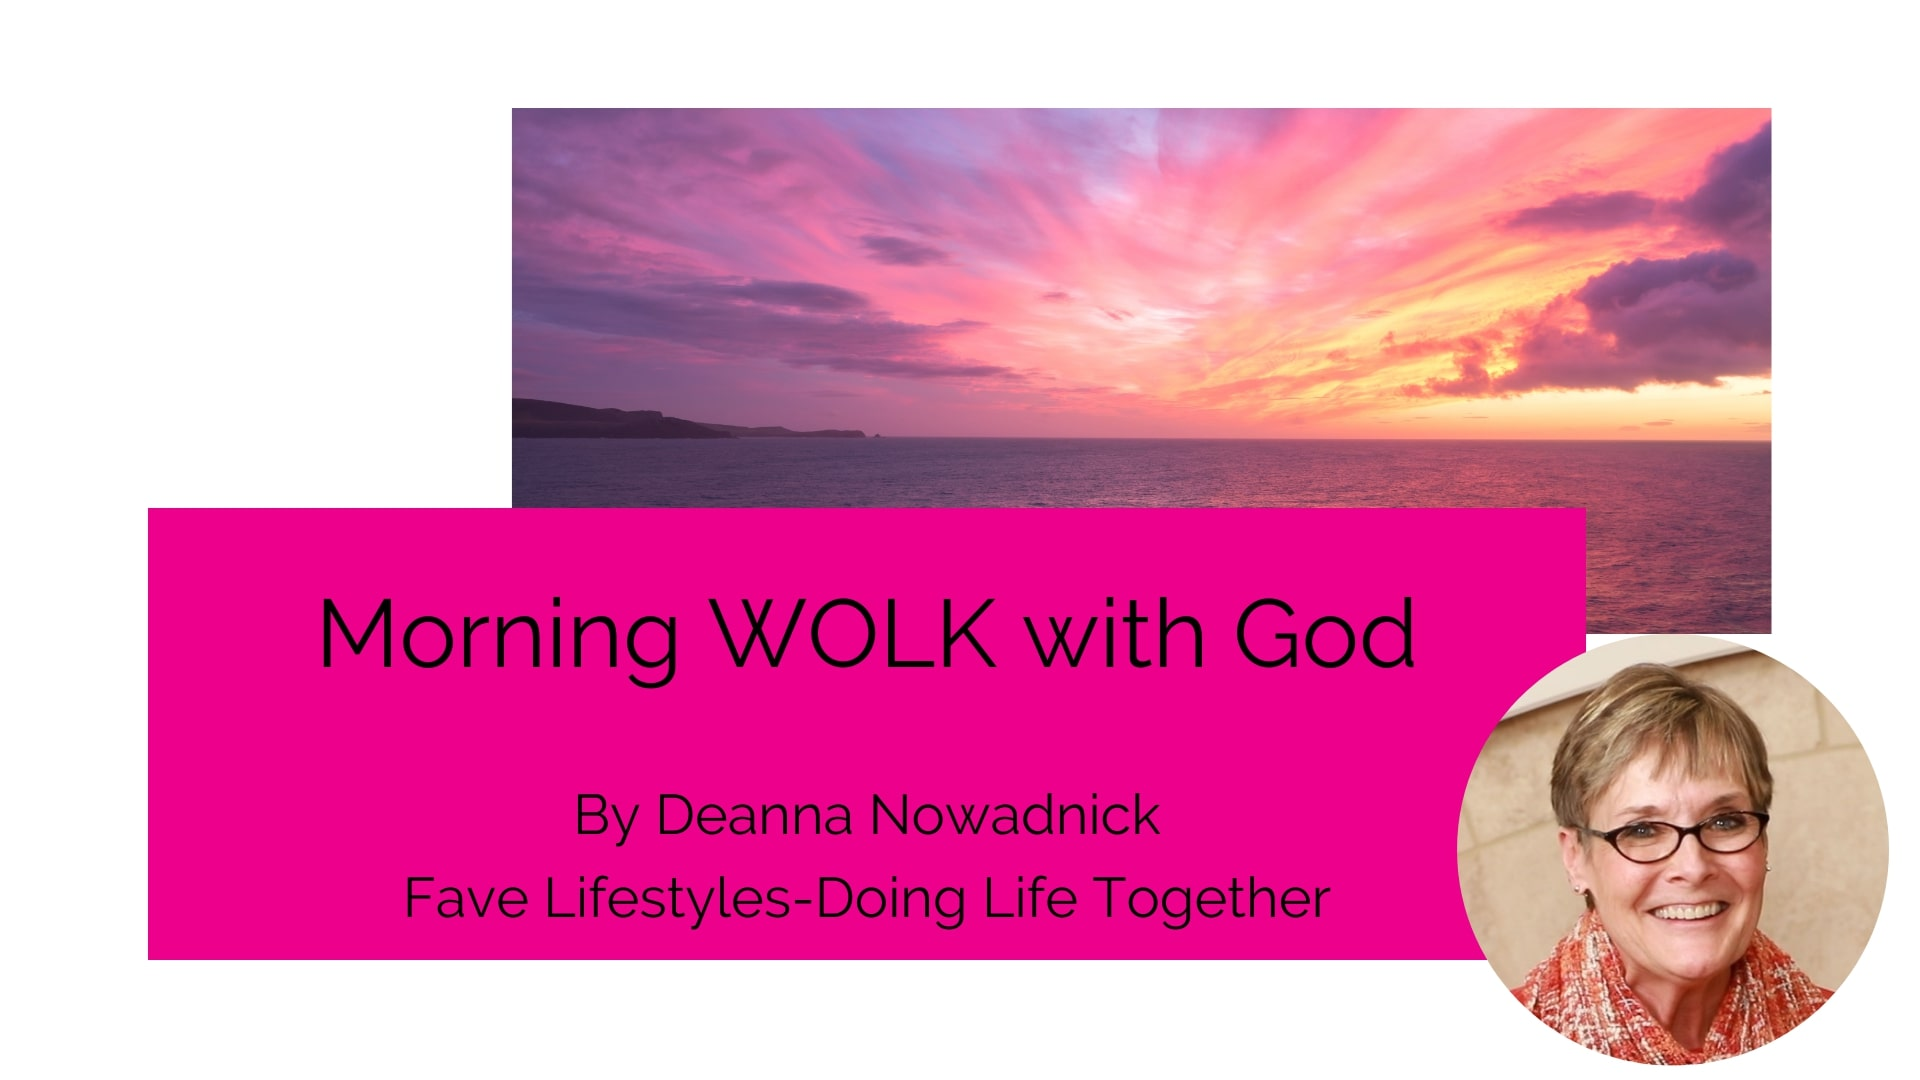 Morning WOLK with God